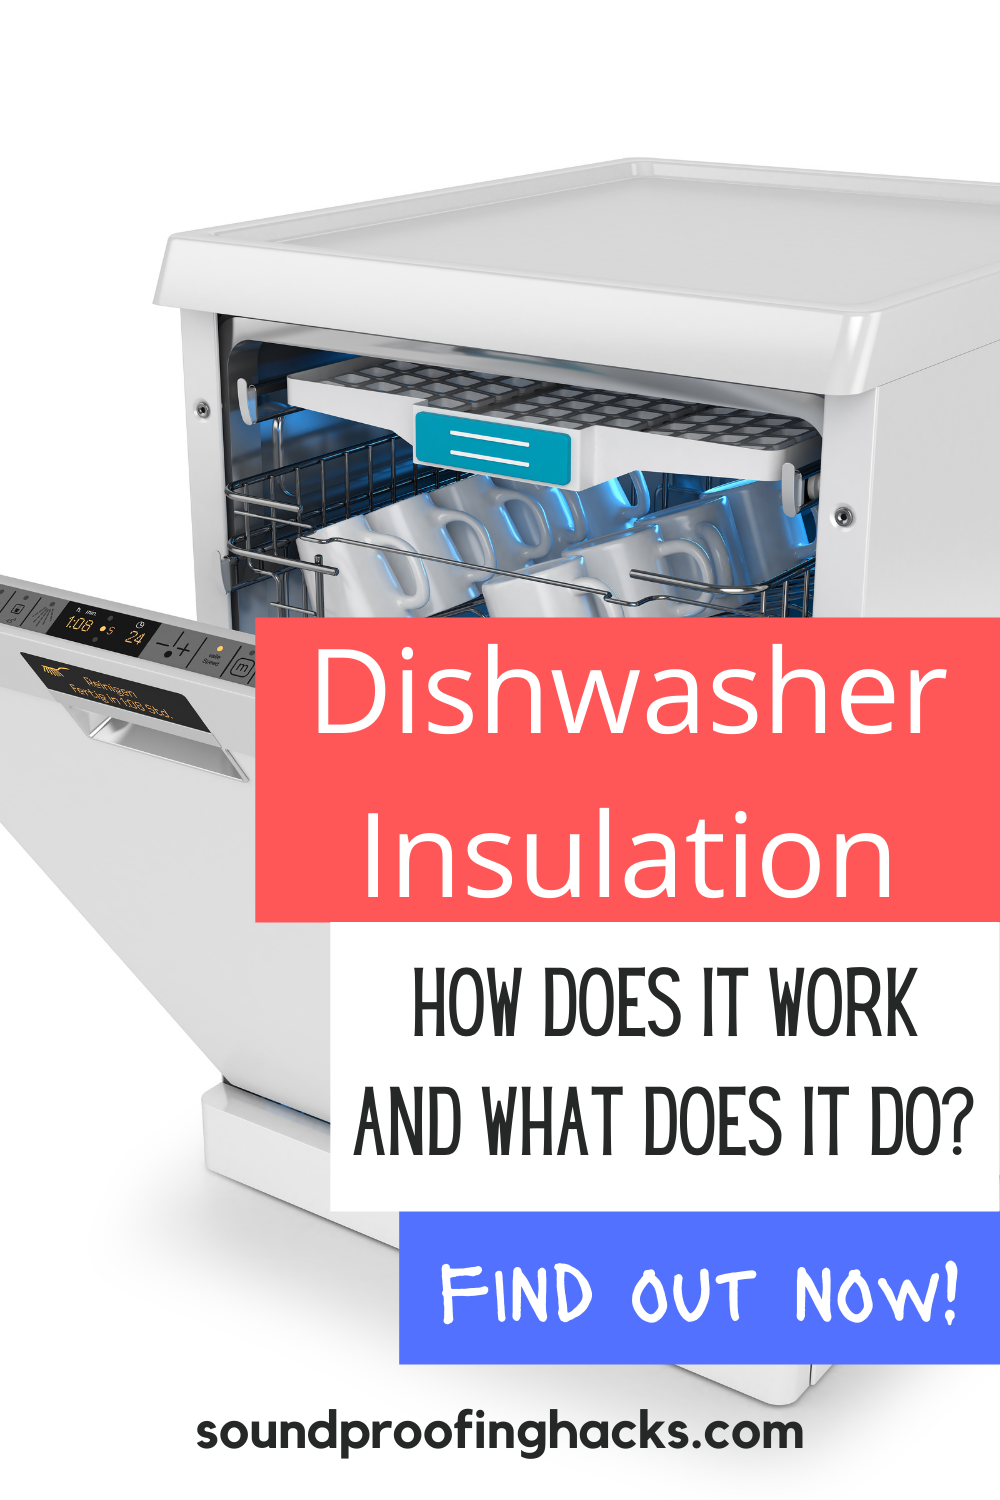 Reduce Dishwasher Noise With An Insulation Blanket Blanket Insulation Soundproofing Diy Sound Proofing